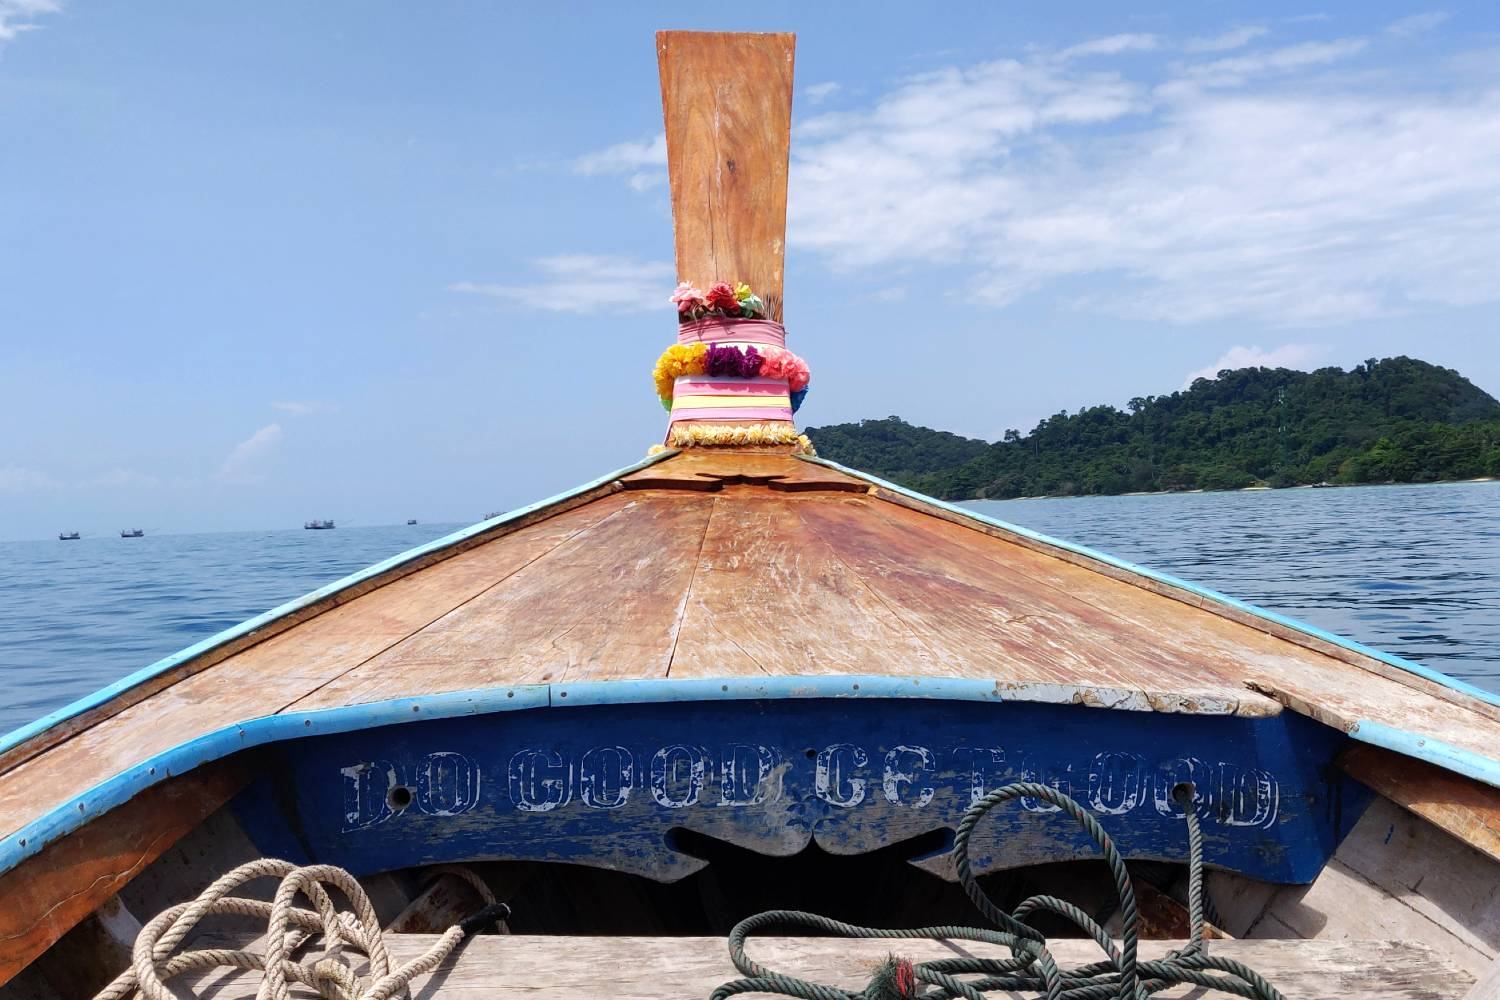 Do Good Get Good on a longtail boat on the way to Koh Kradan